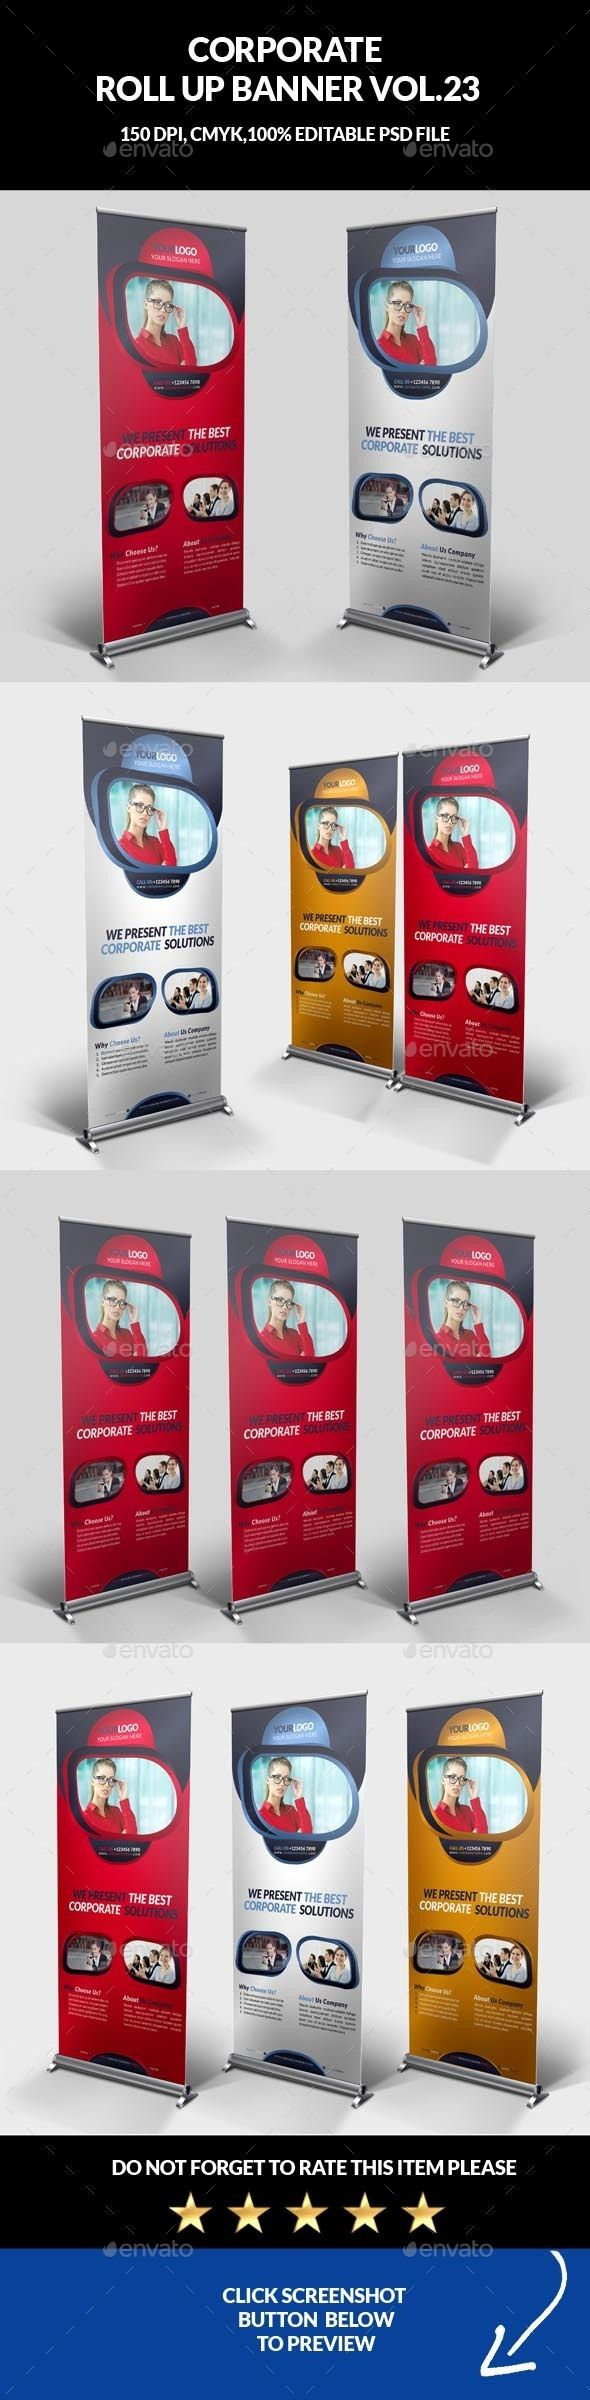 140 best Standee images on Pinterest | Banner template, Banner ...